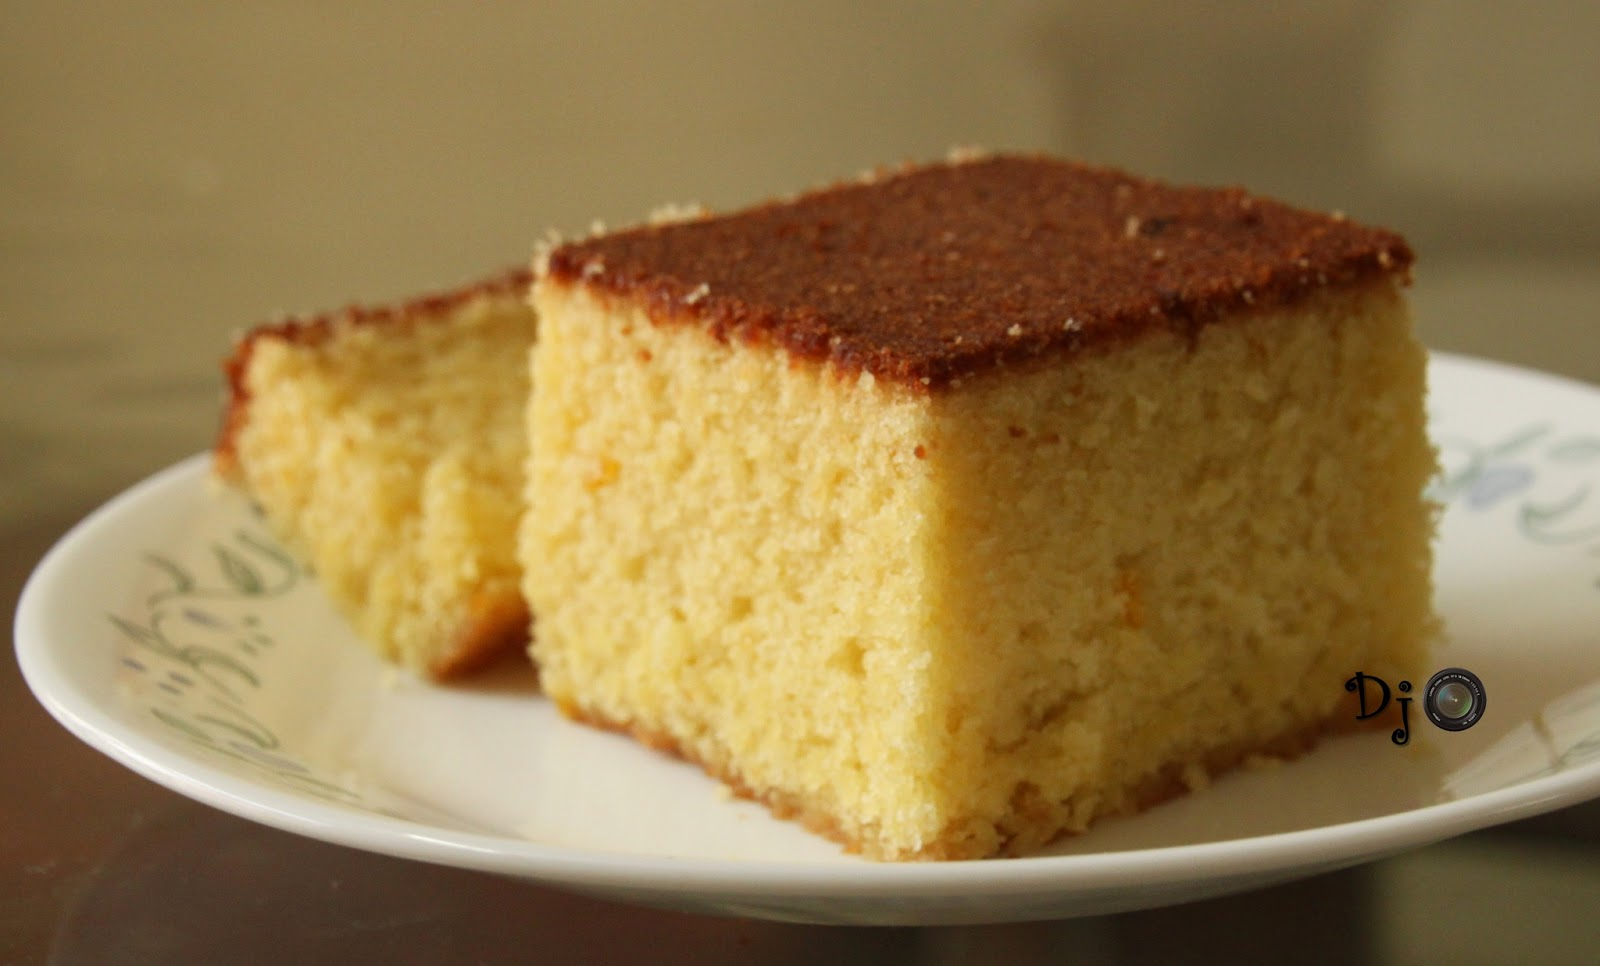 How To Make Vanilla Cake Without Egg And Oven